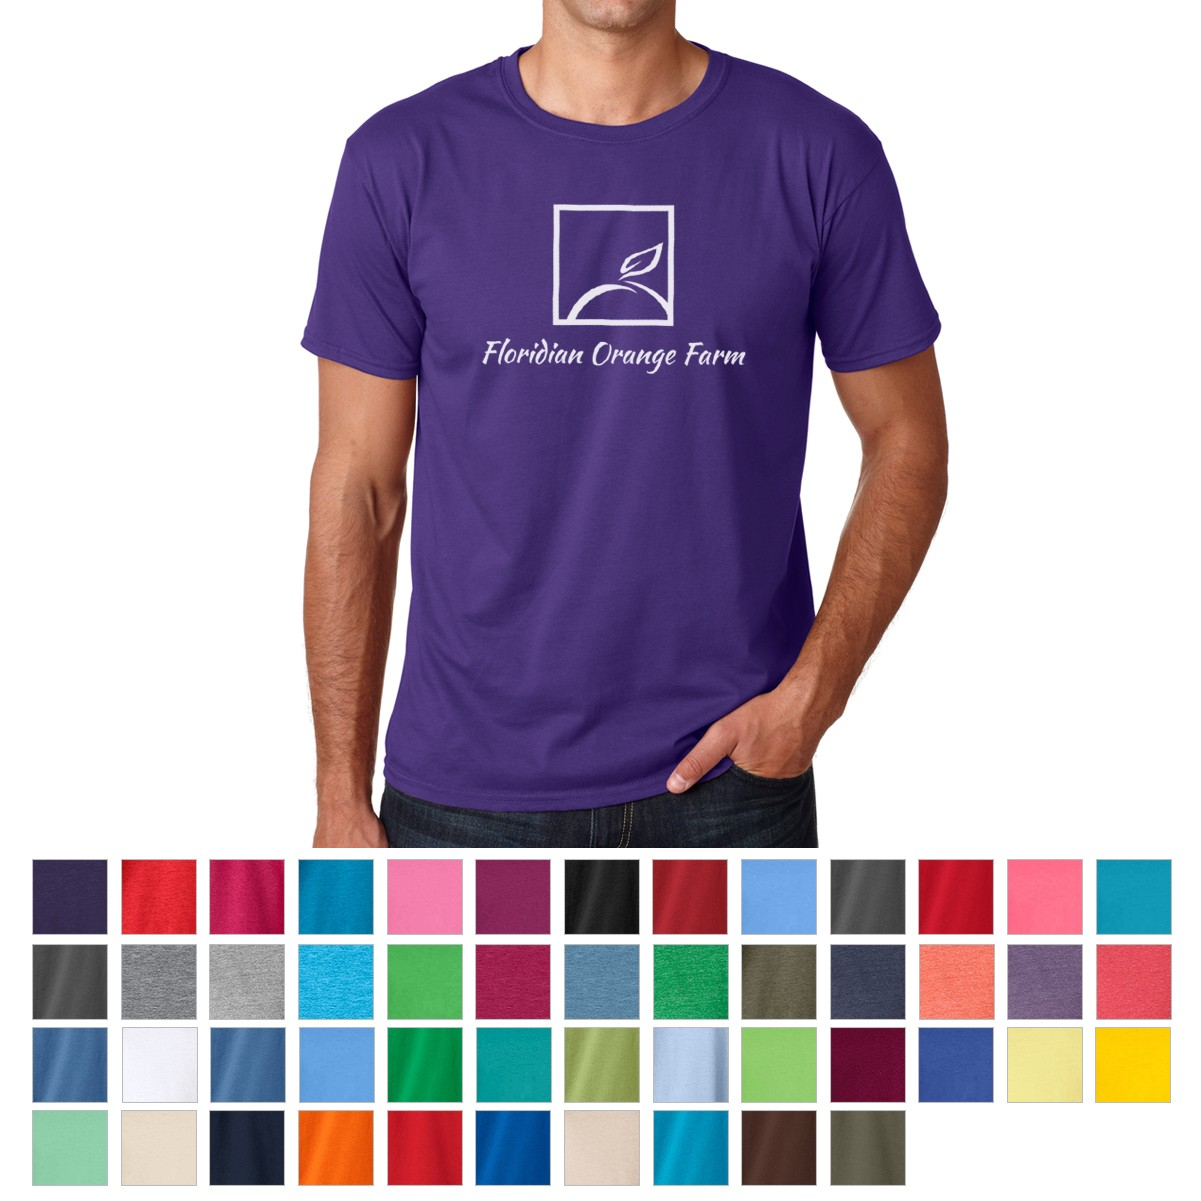 e7b477e3 Expo Branders | Trade Show Displays | Promotional Products - T-shirts